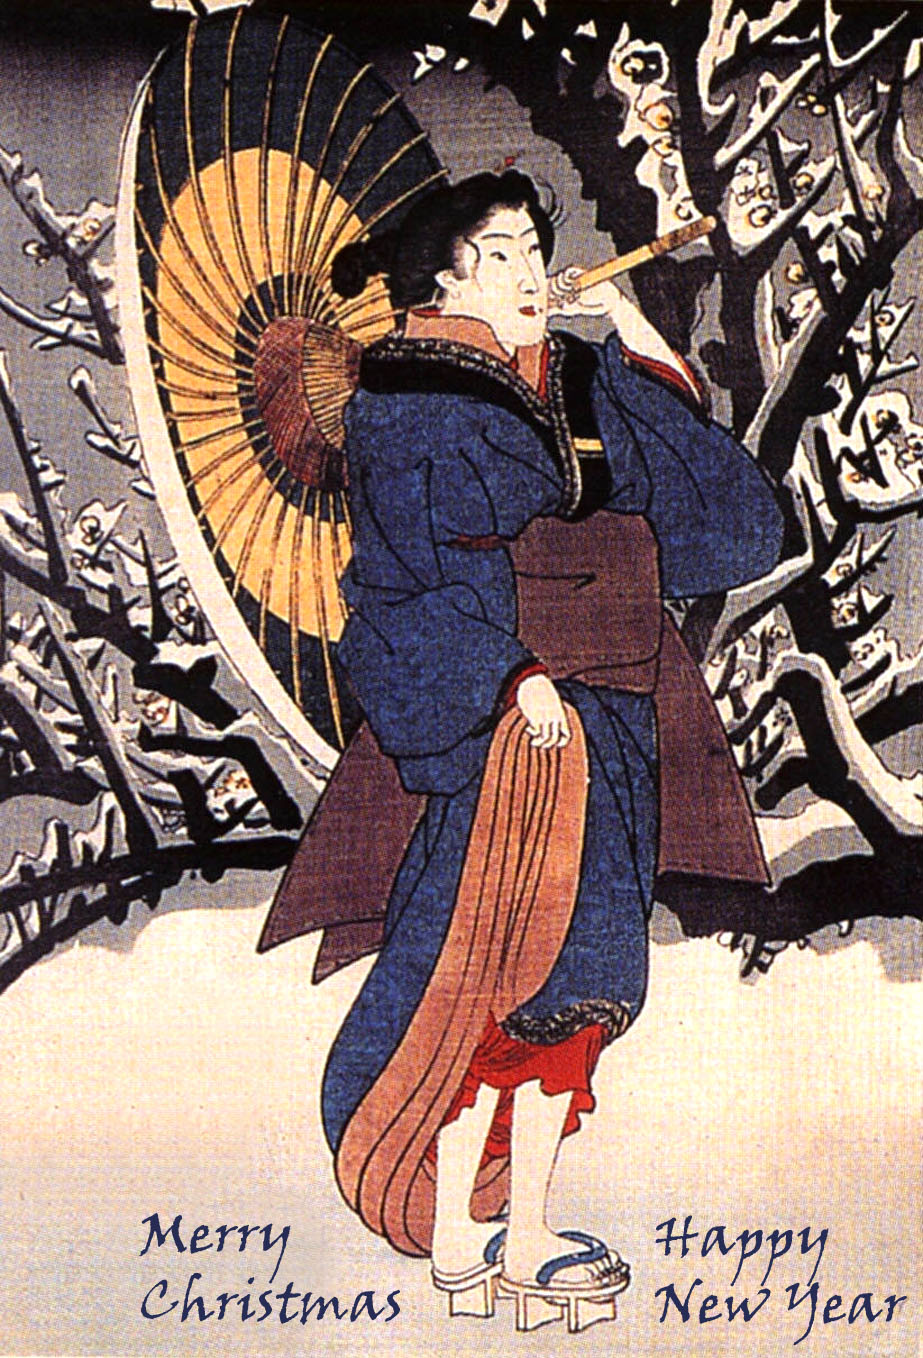 Japanese woman with umbrella in snow by Kuniyoshi Utagawa - Christmas and New Year card